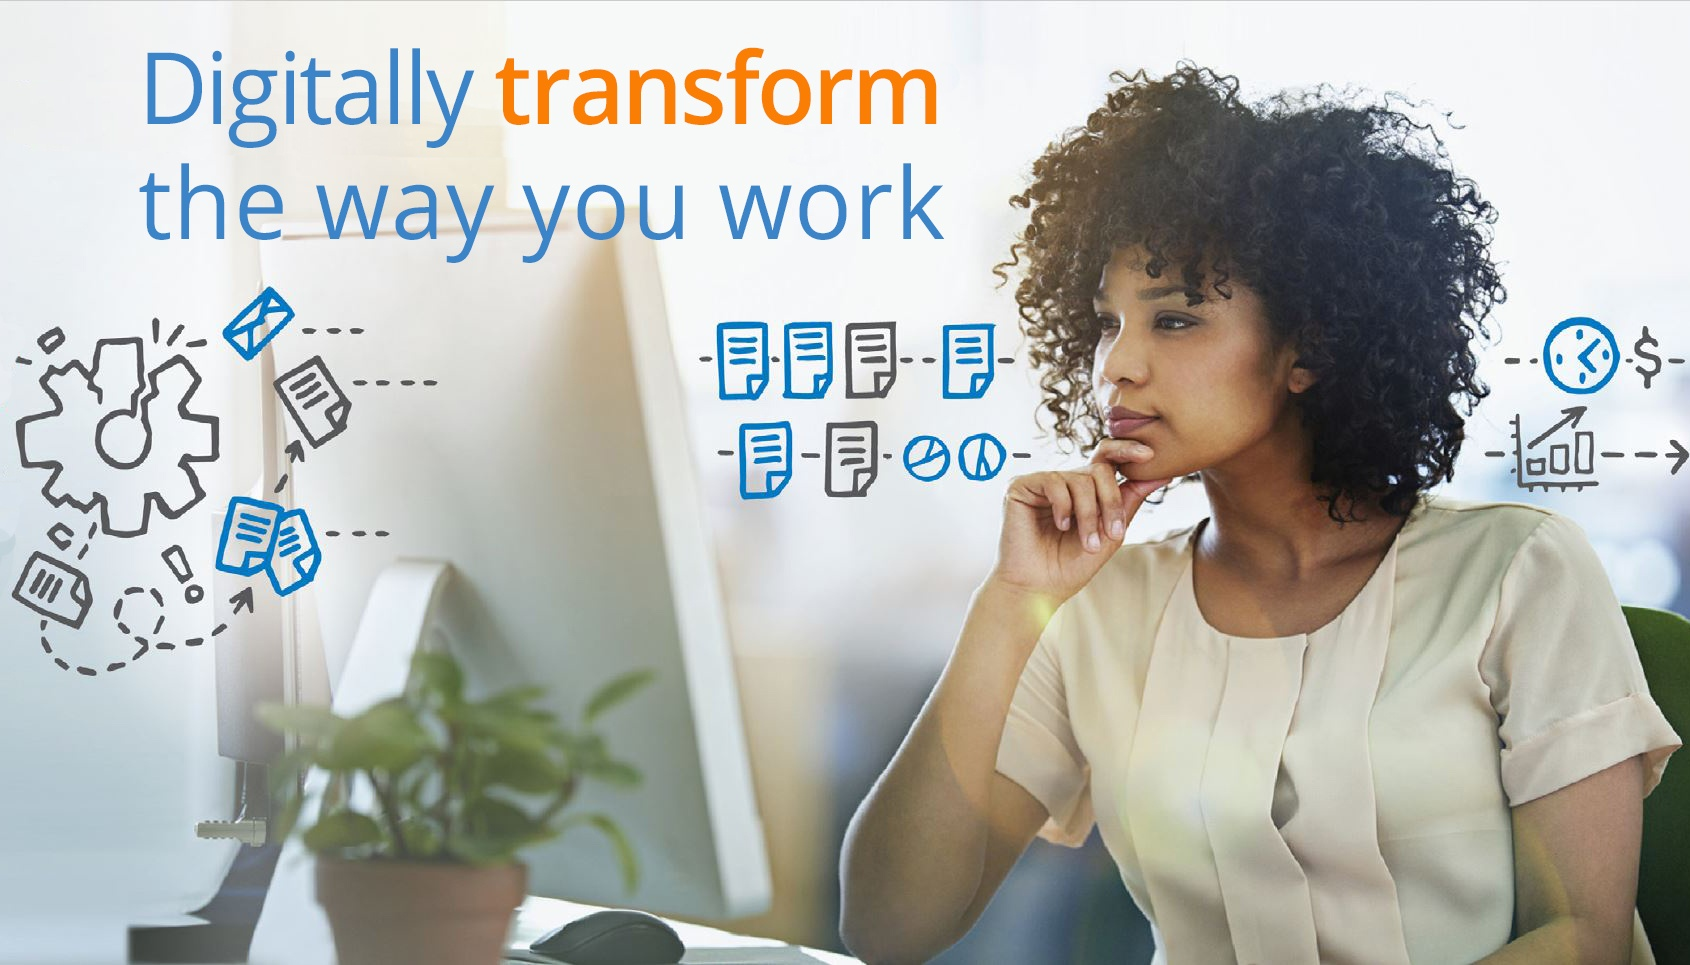 digitally_transform the way you work